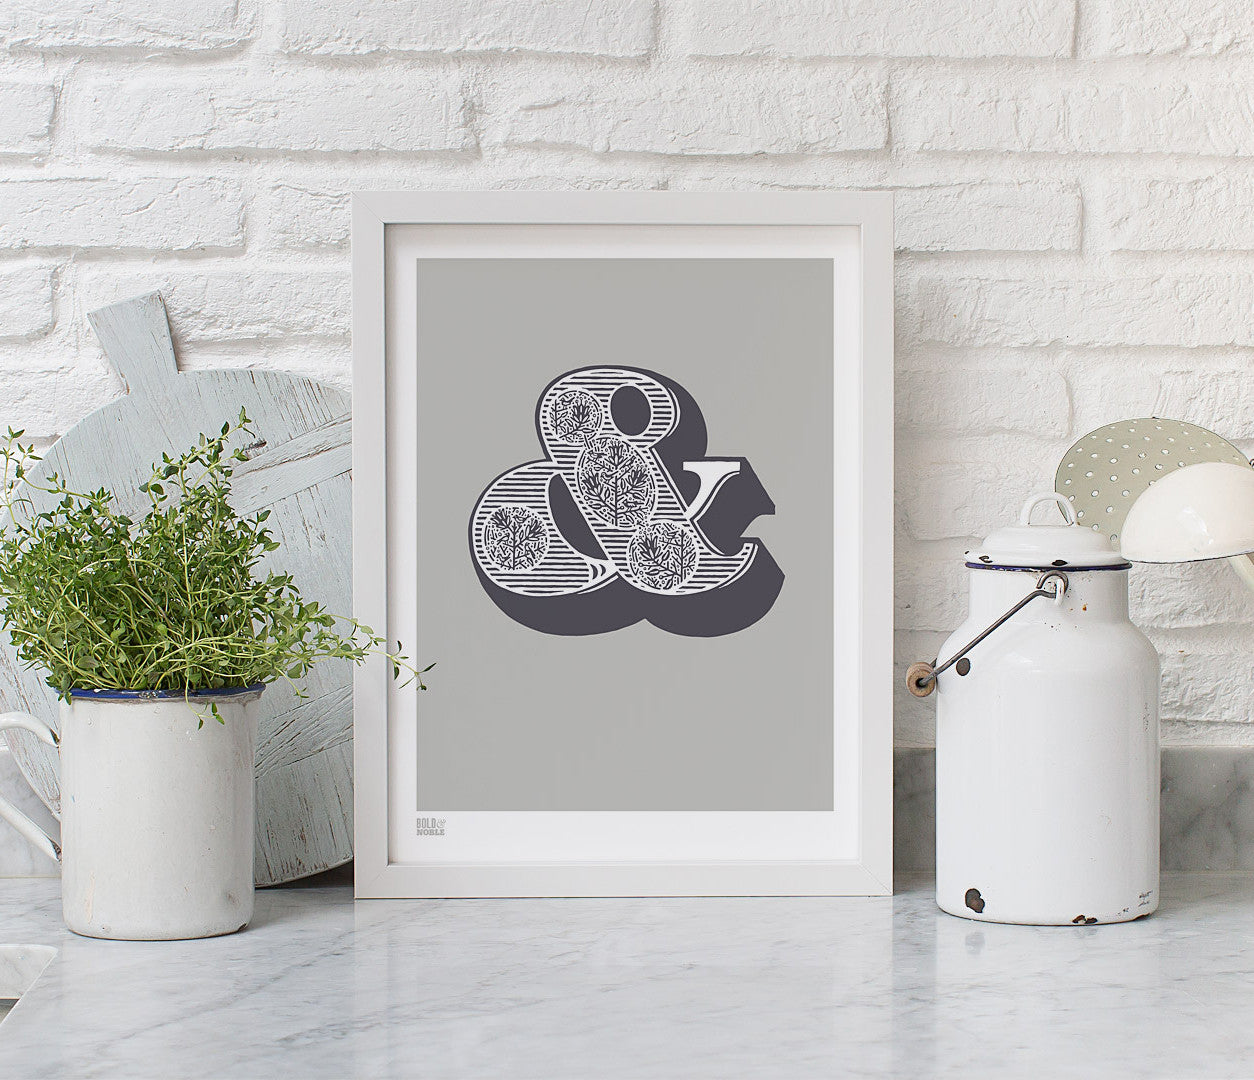 Wall art ideas, economical screen prints, illustrated ampersand in putty grey